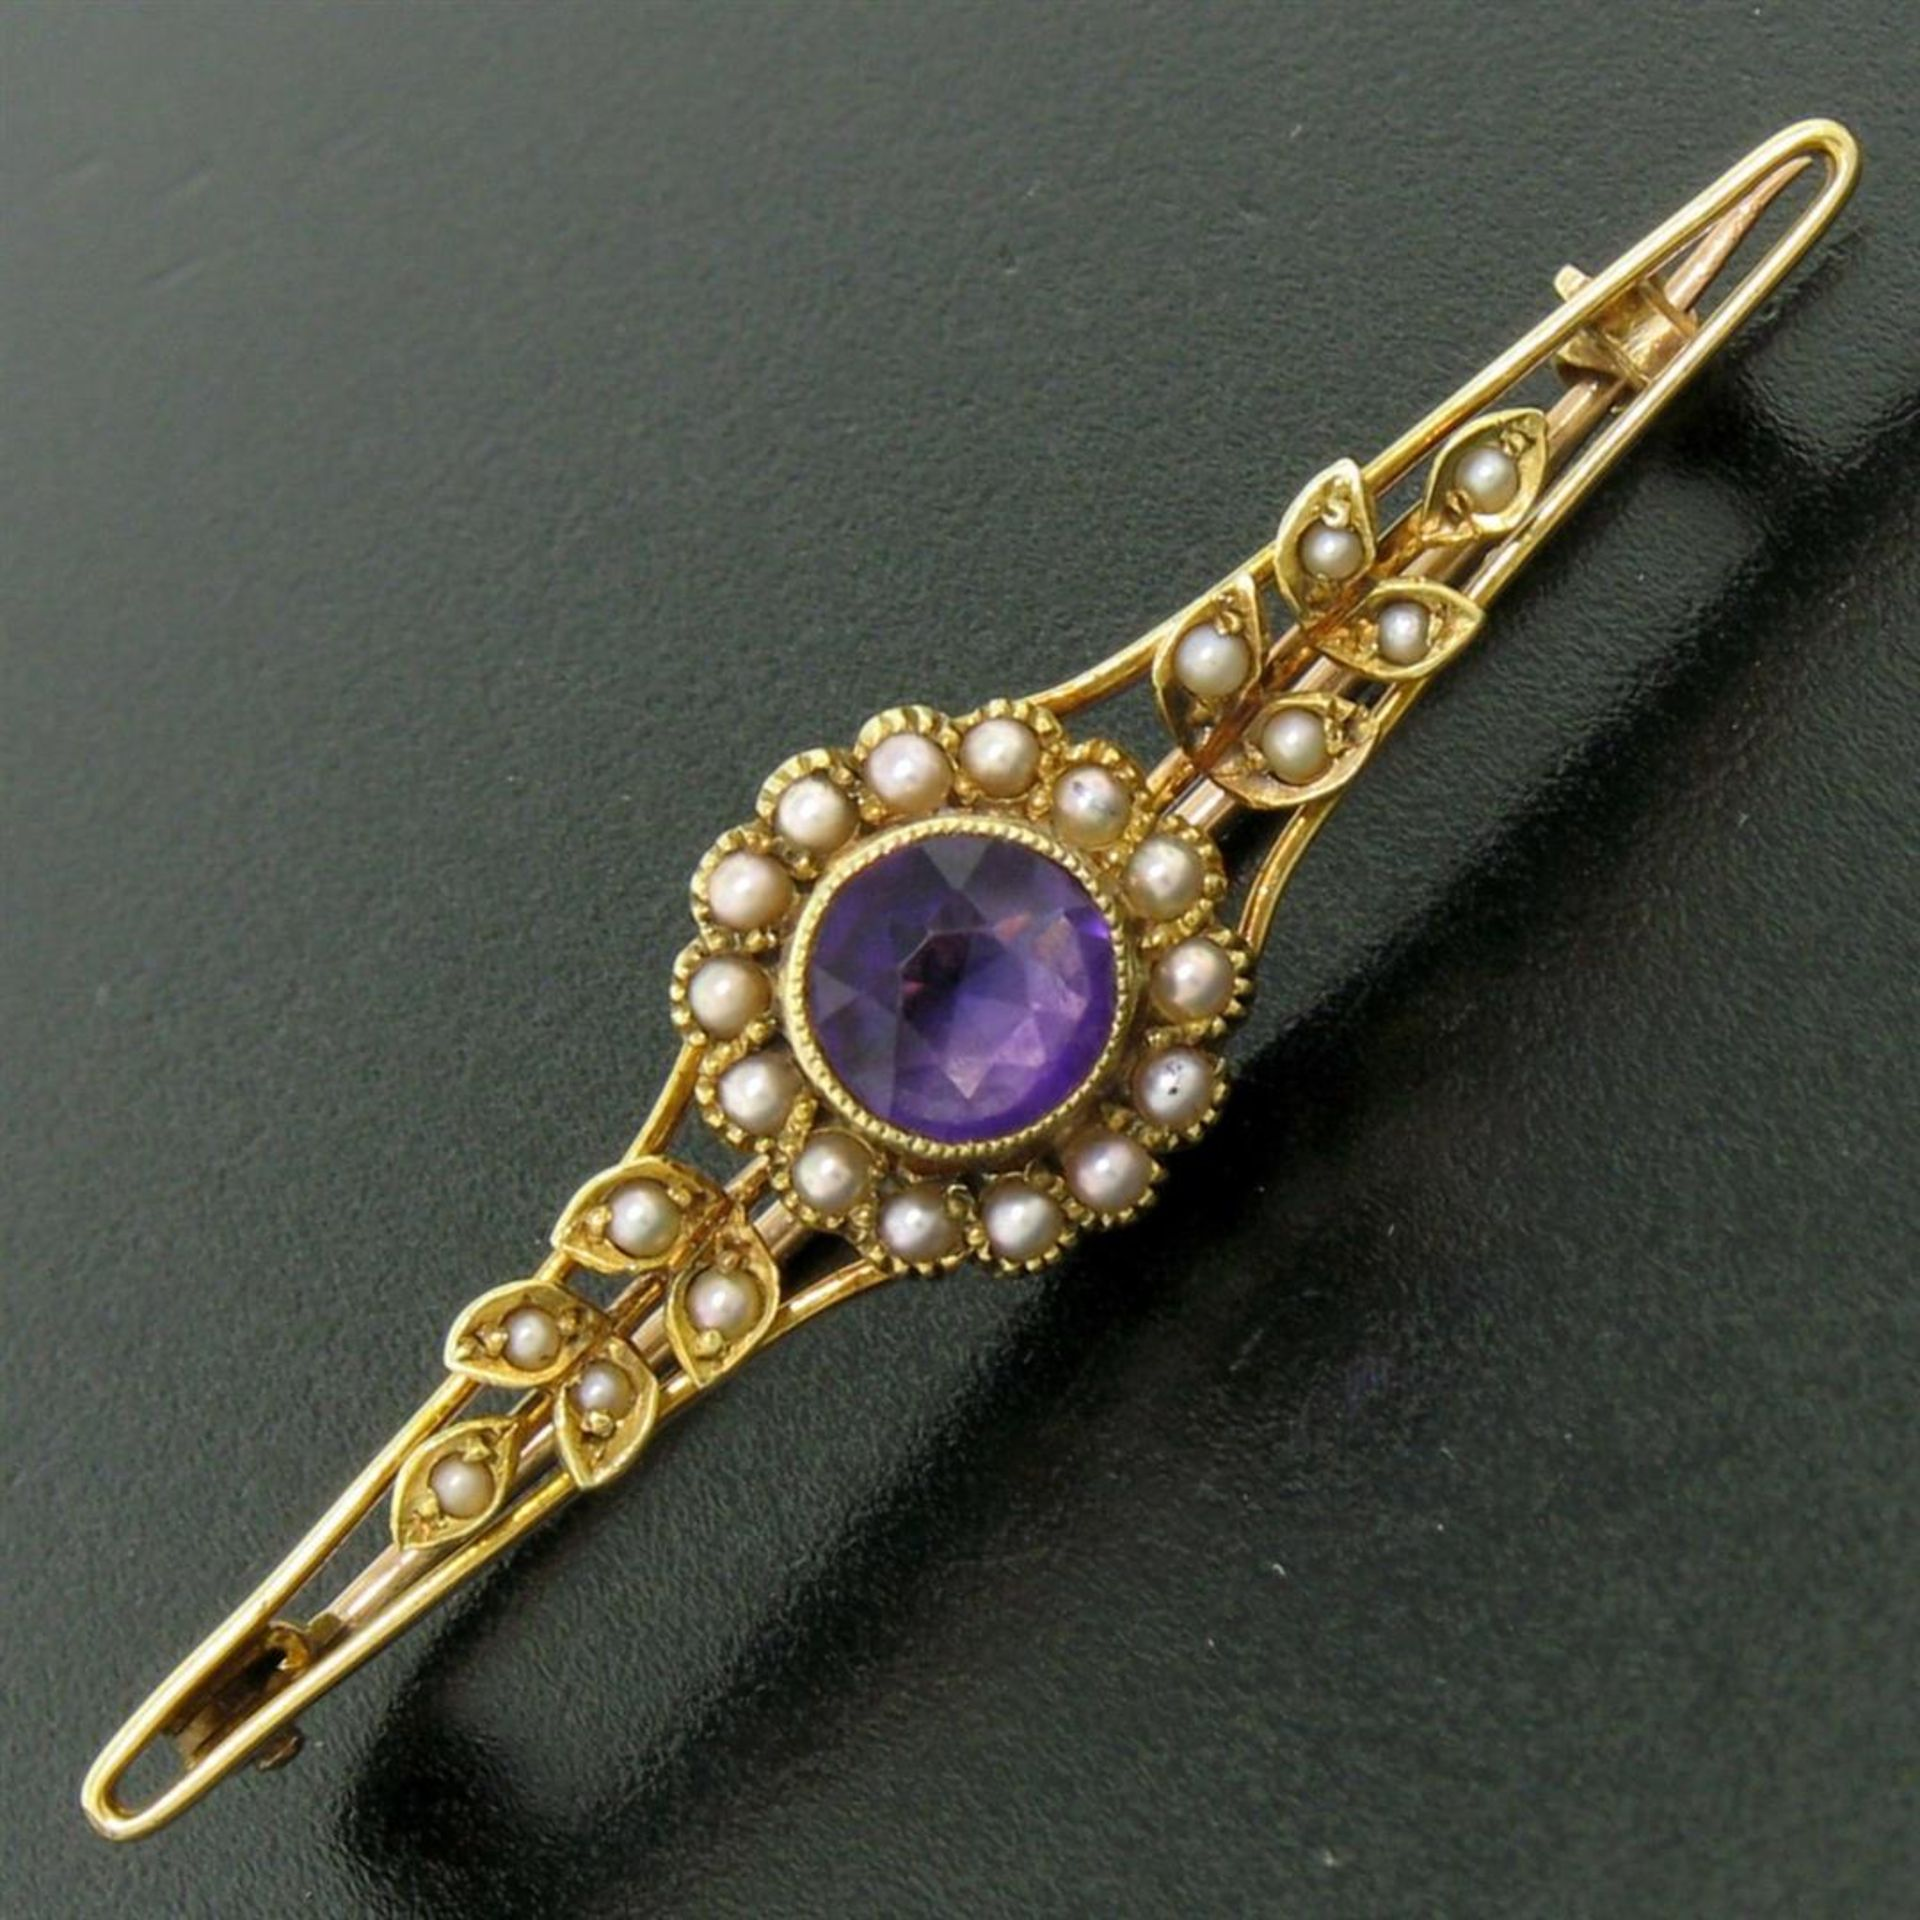 15k Yellow Gold .64 ct Old Cut Amethyst & Seed Pearl Brooch Pin - Image 2 of 8